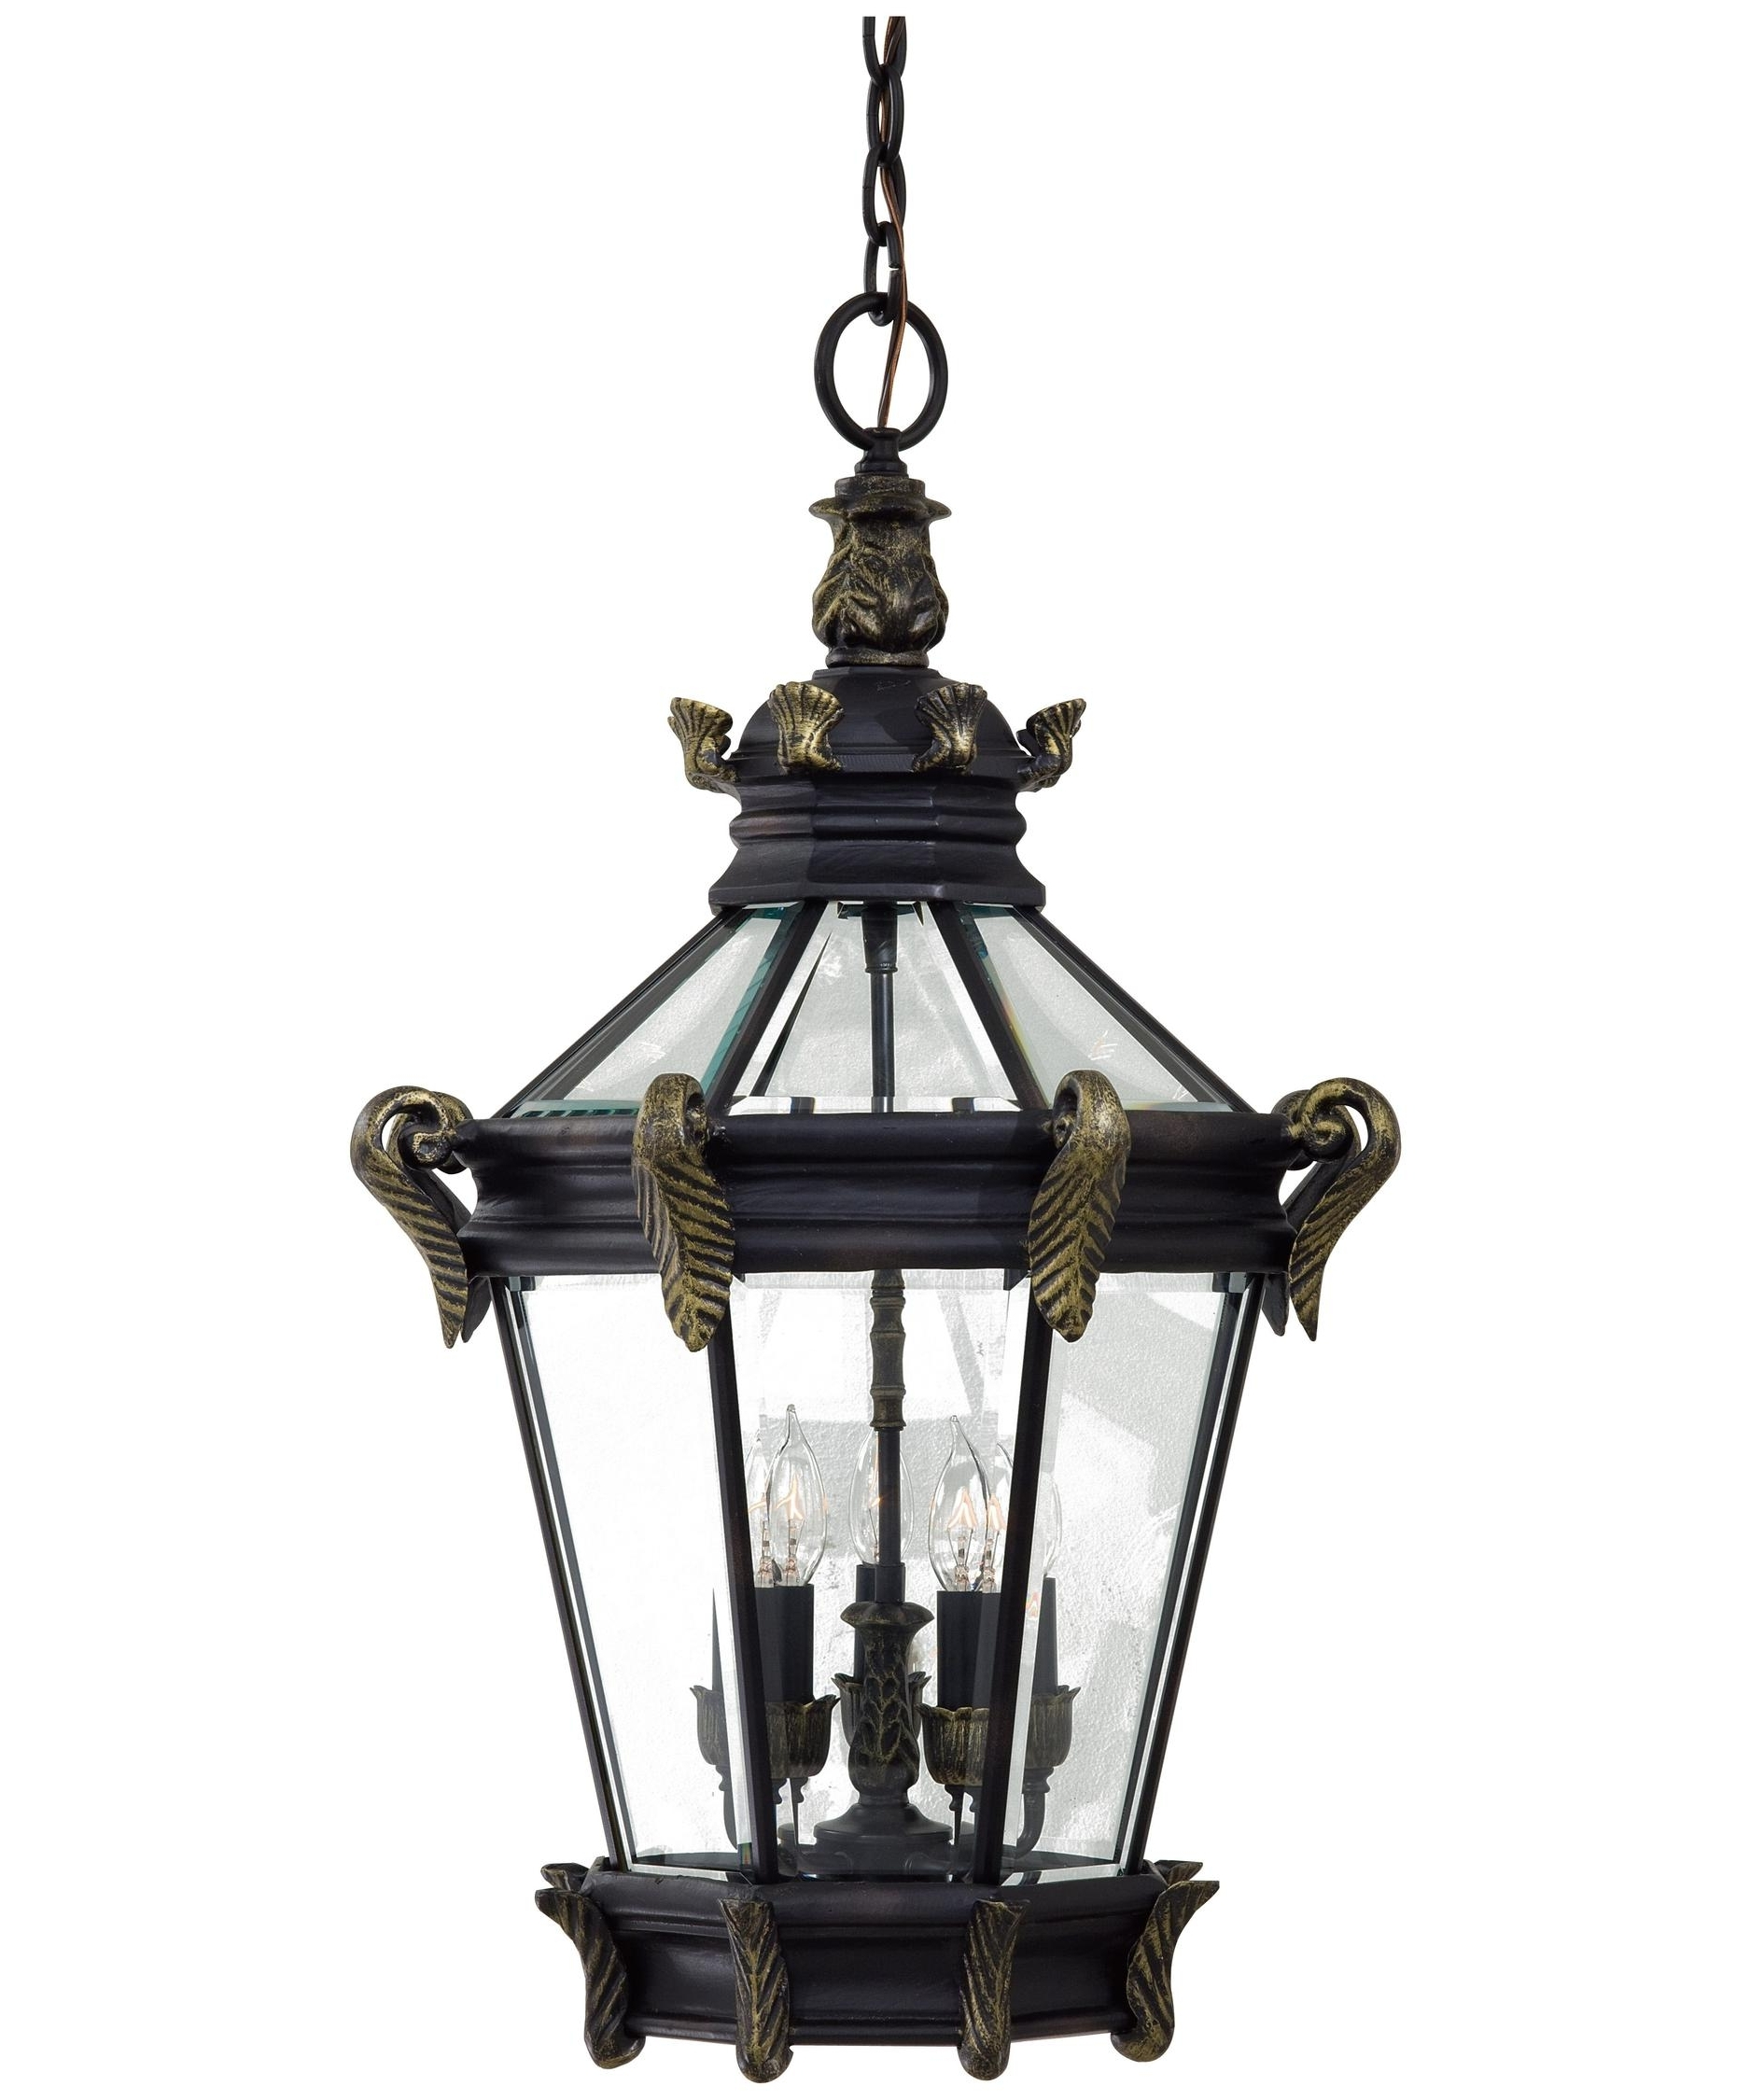 Minka Lavery 8934 Stratford Hall 19 Inch Wide 5 Light Outdoor Regarding Most Current White Outdoor Hanging Lights (View 6 of 20)